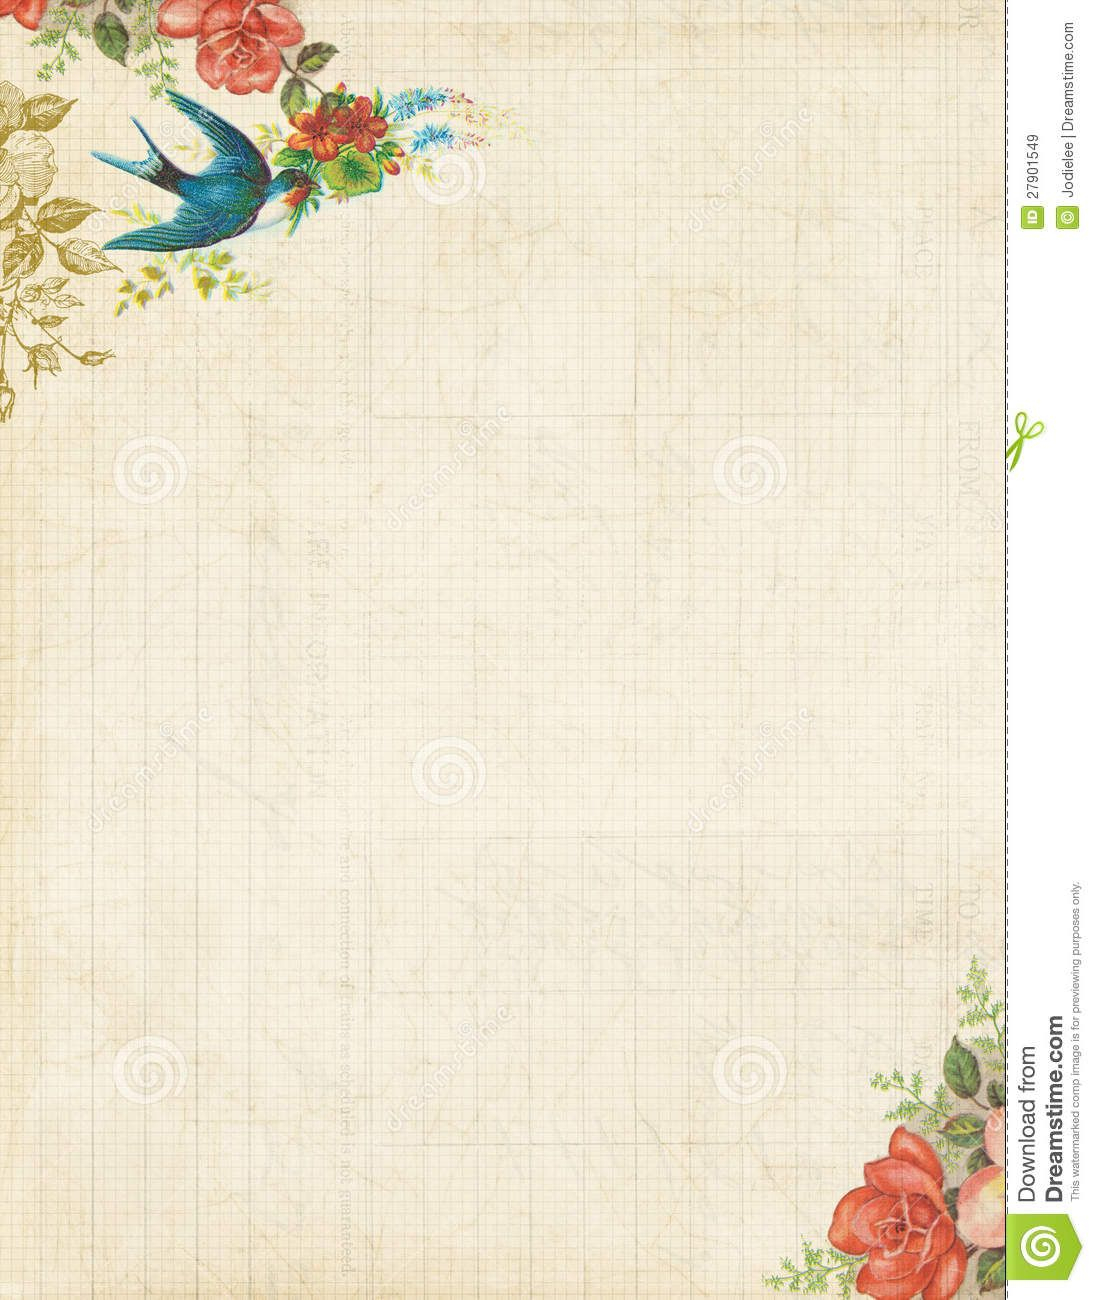 Free Printable Stationery Vintage Backgrounds - 8.4.kaartenstemp.nl • - Free Printable Backgrounds For Paper